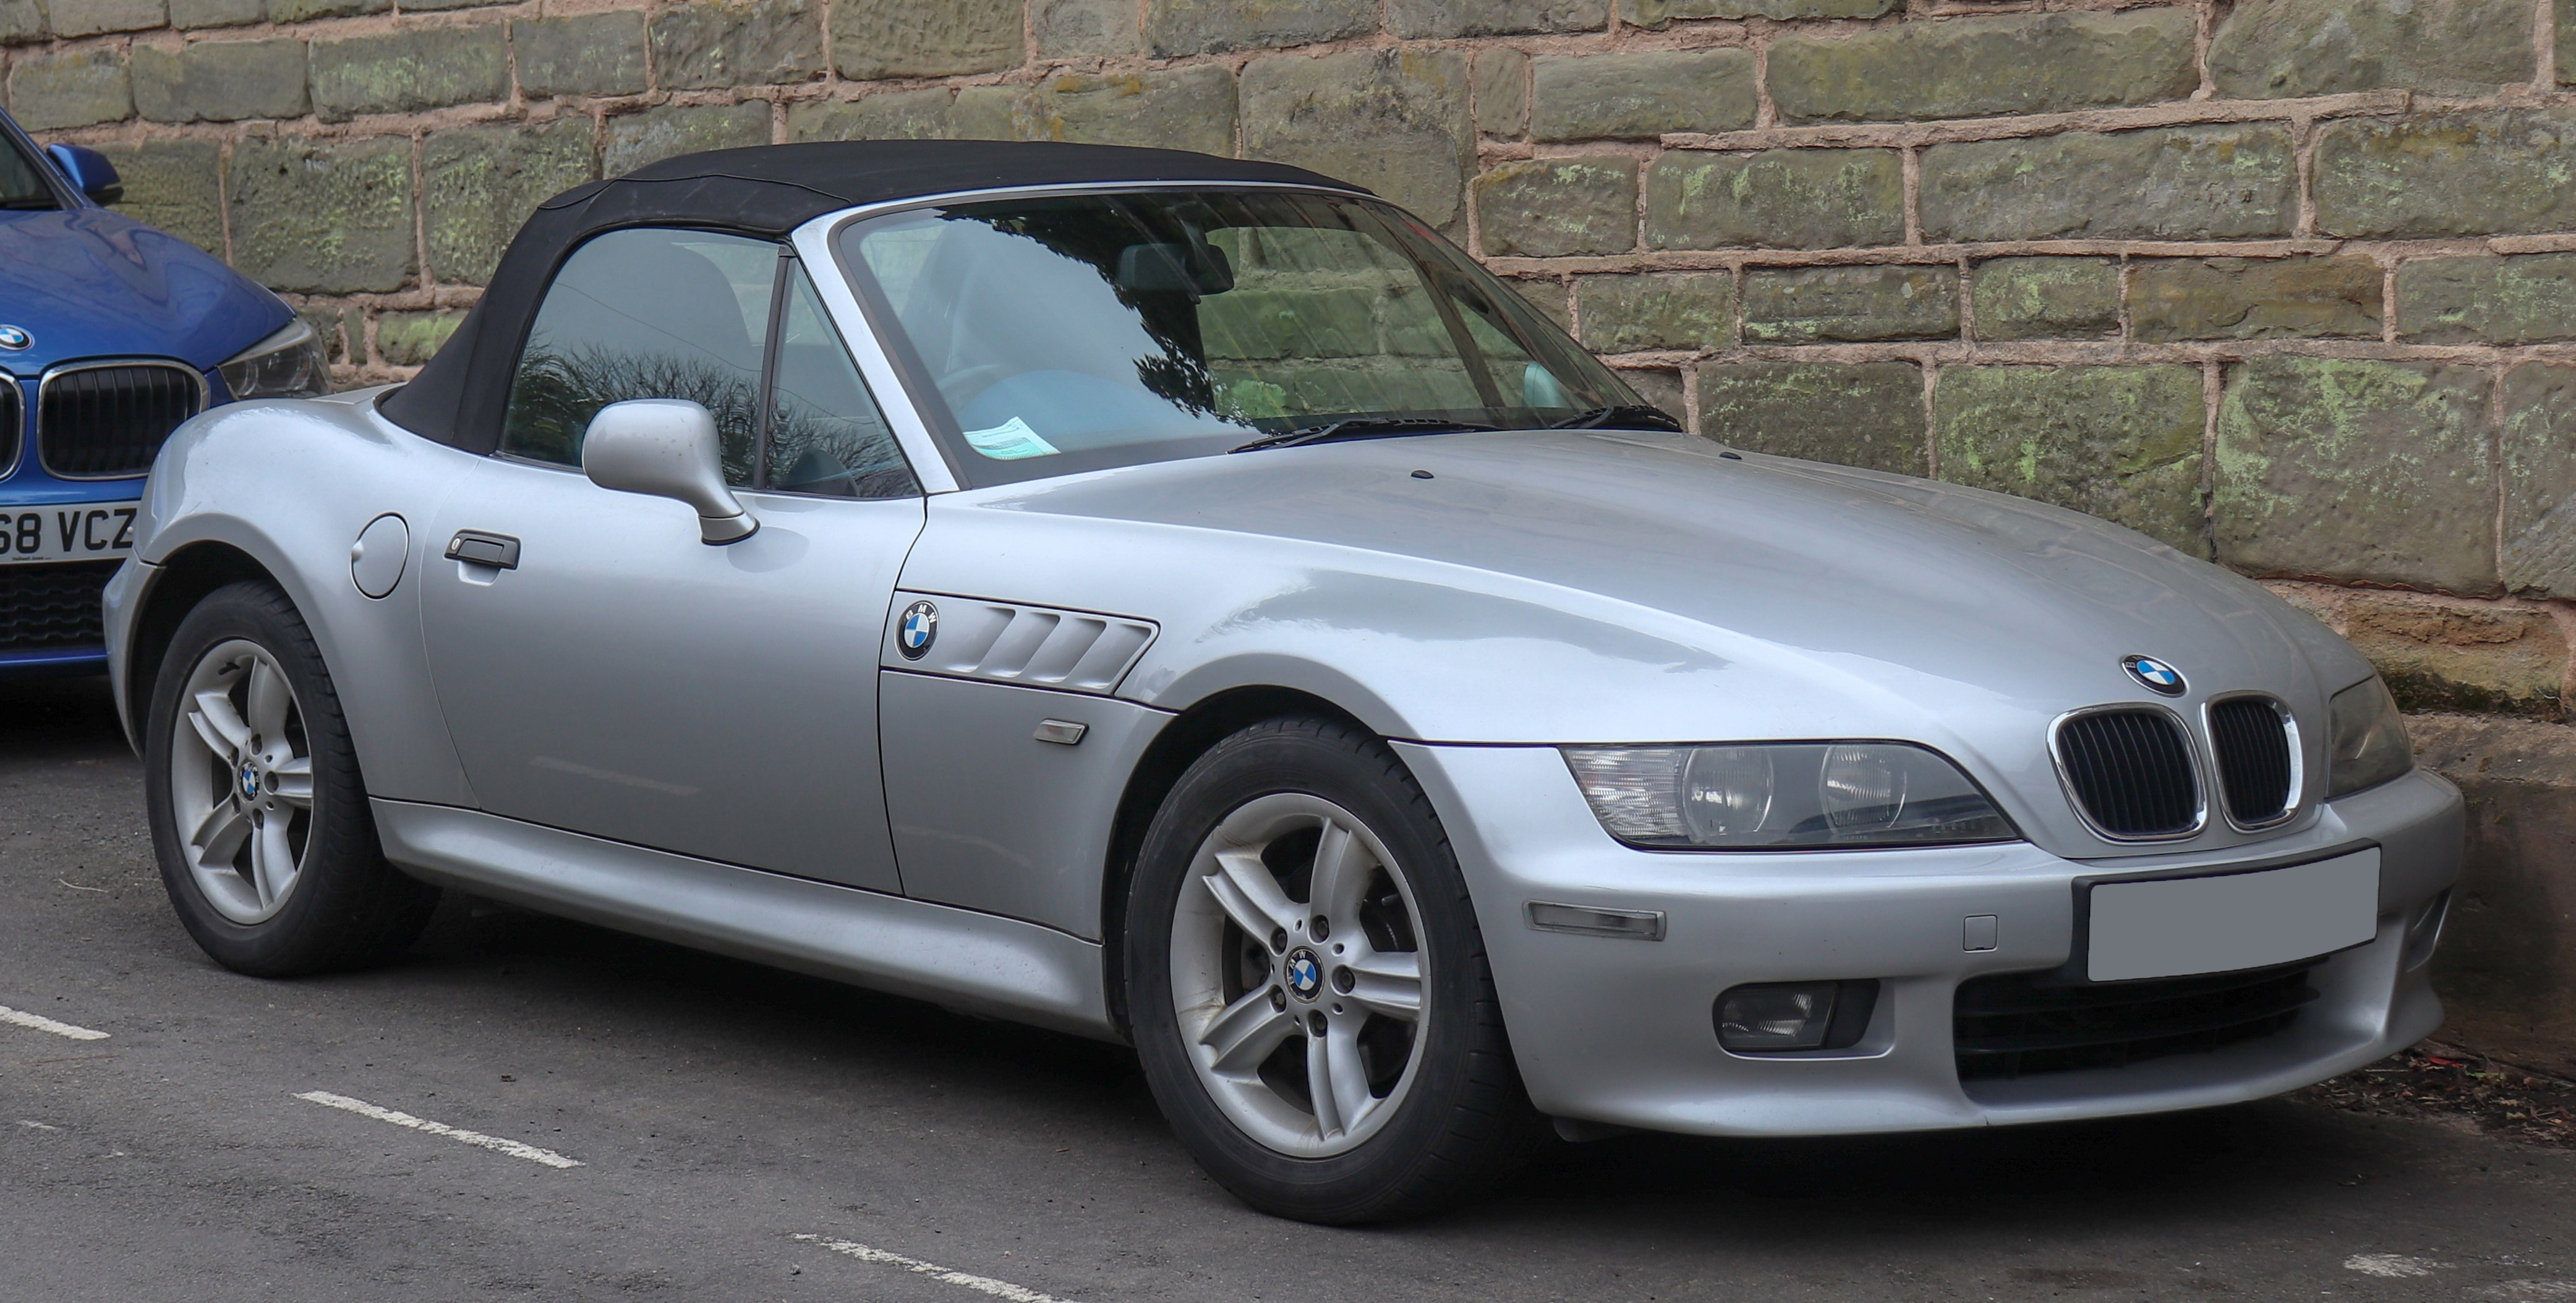 Garage Bmw Angers Bmw Z3 E36 4 The Complete Information And Online Sale With